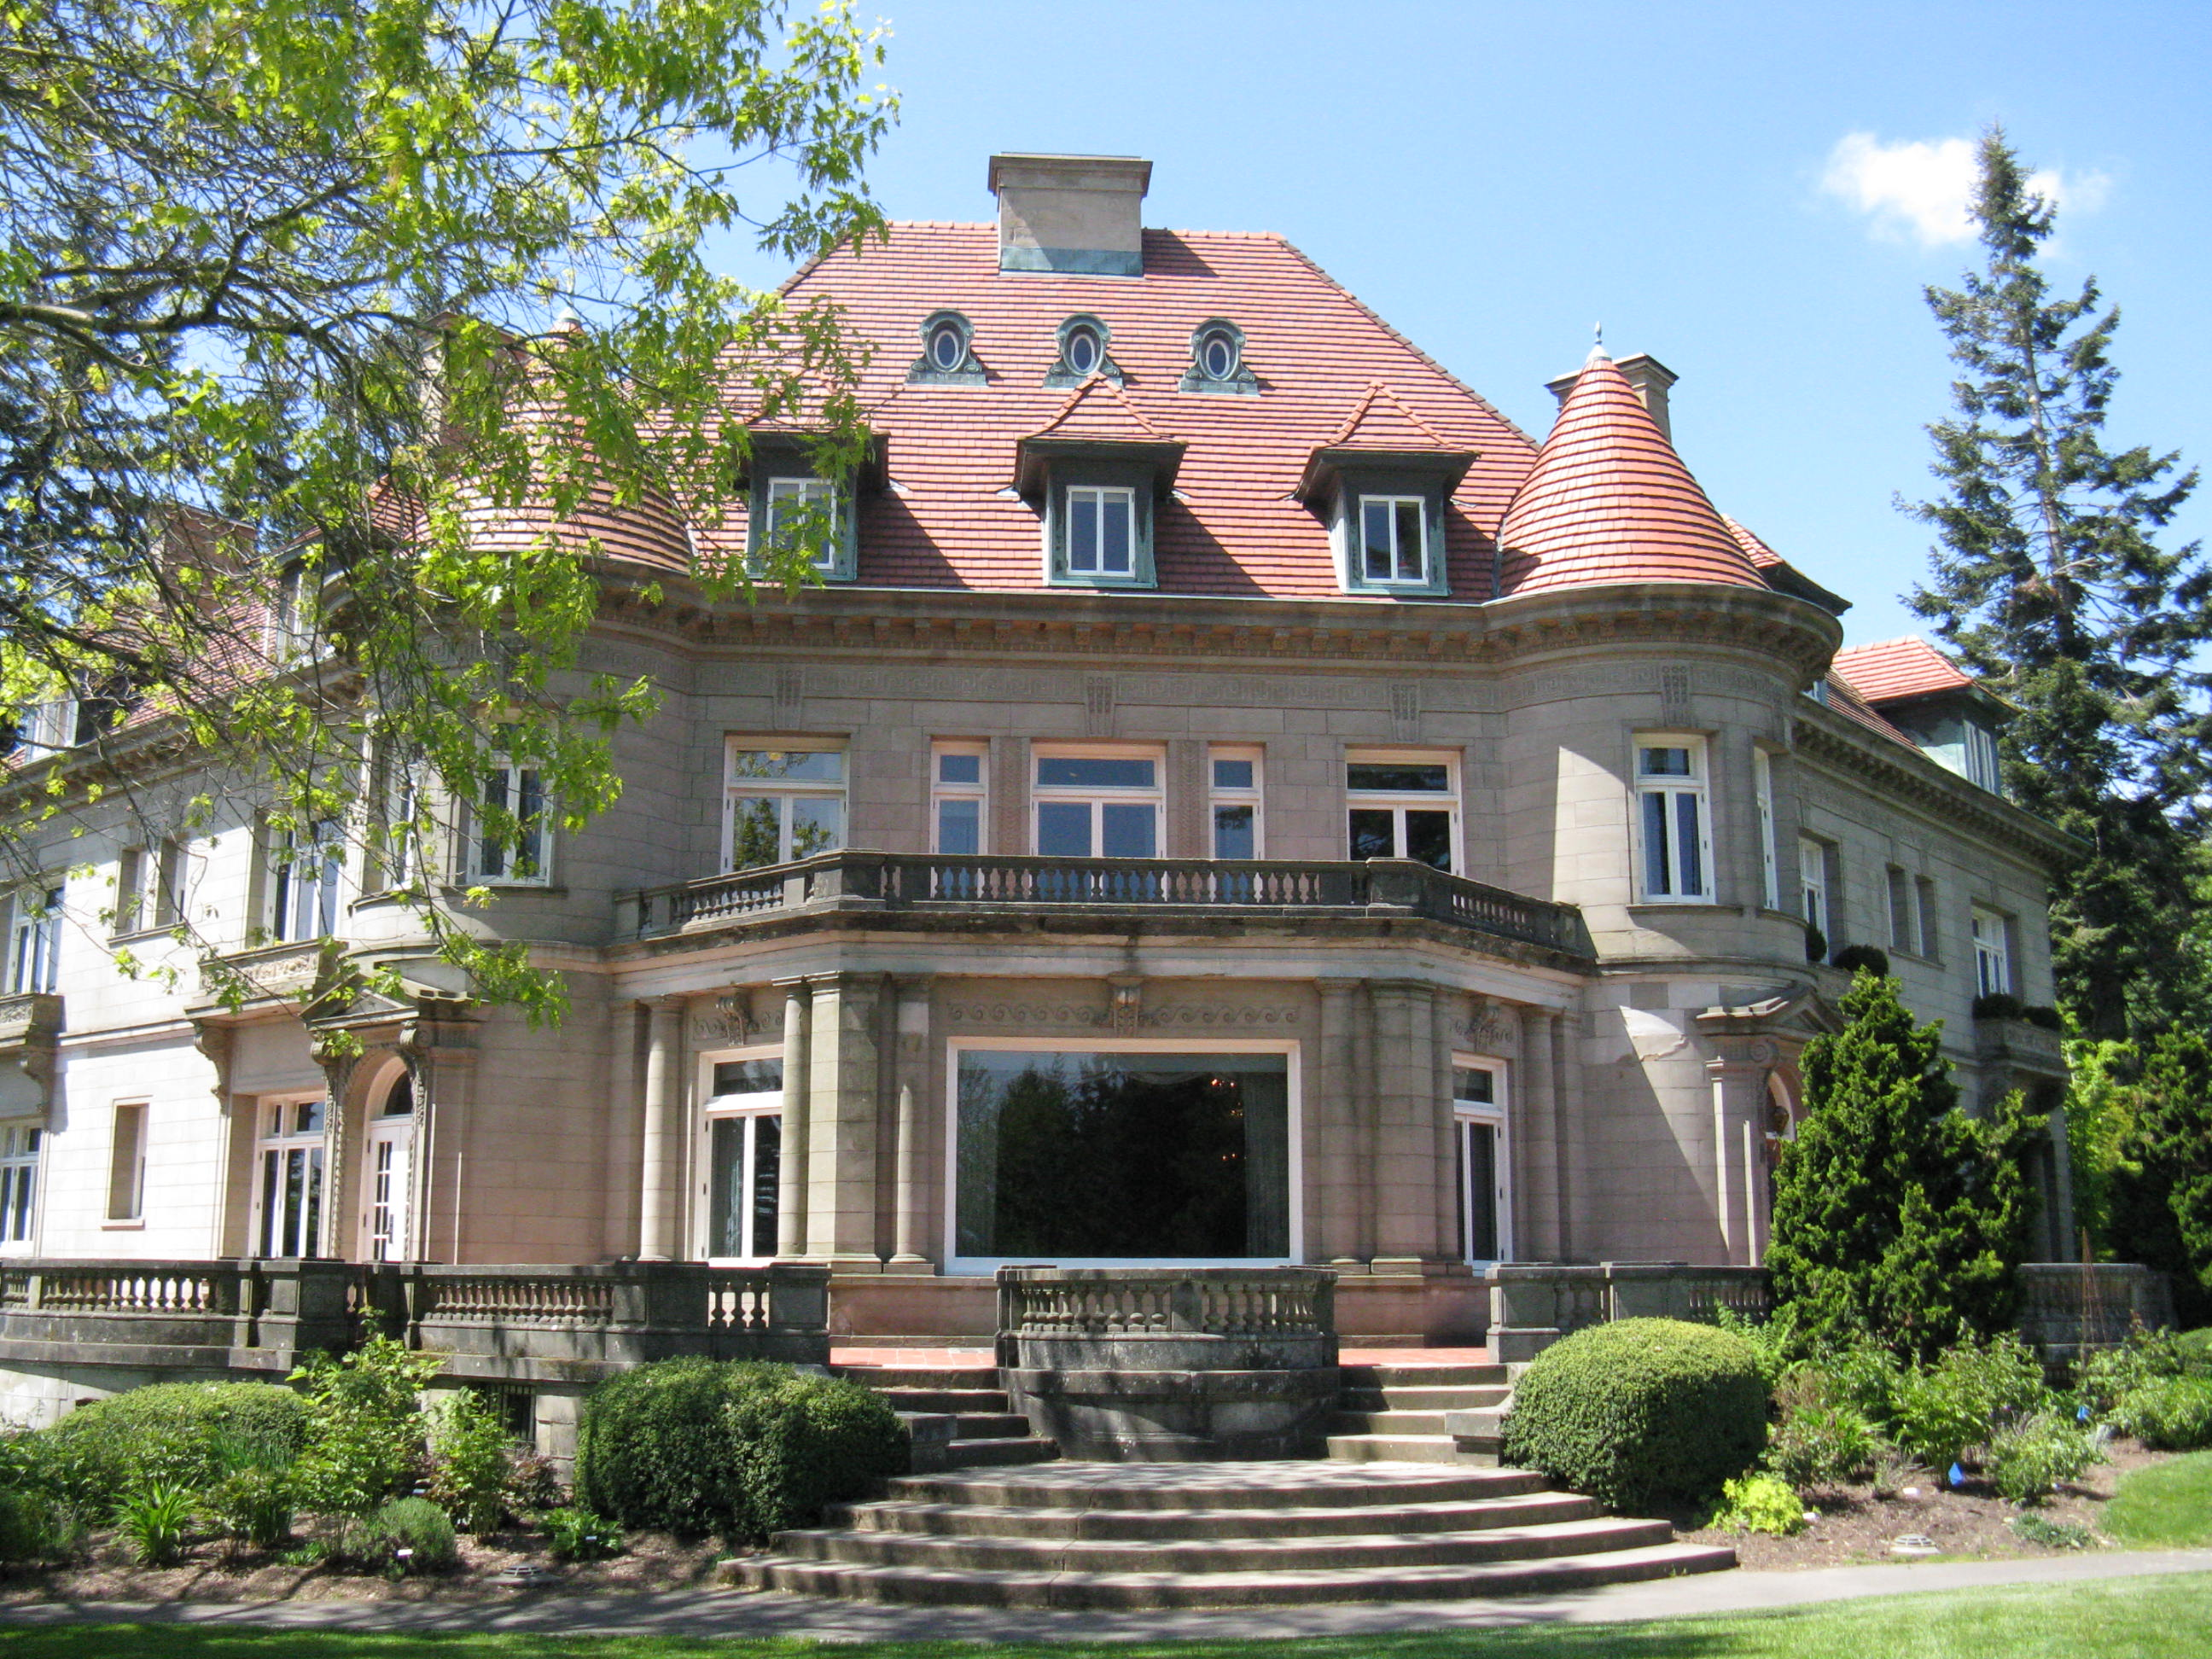 Pittock Mansion 09.14.2012